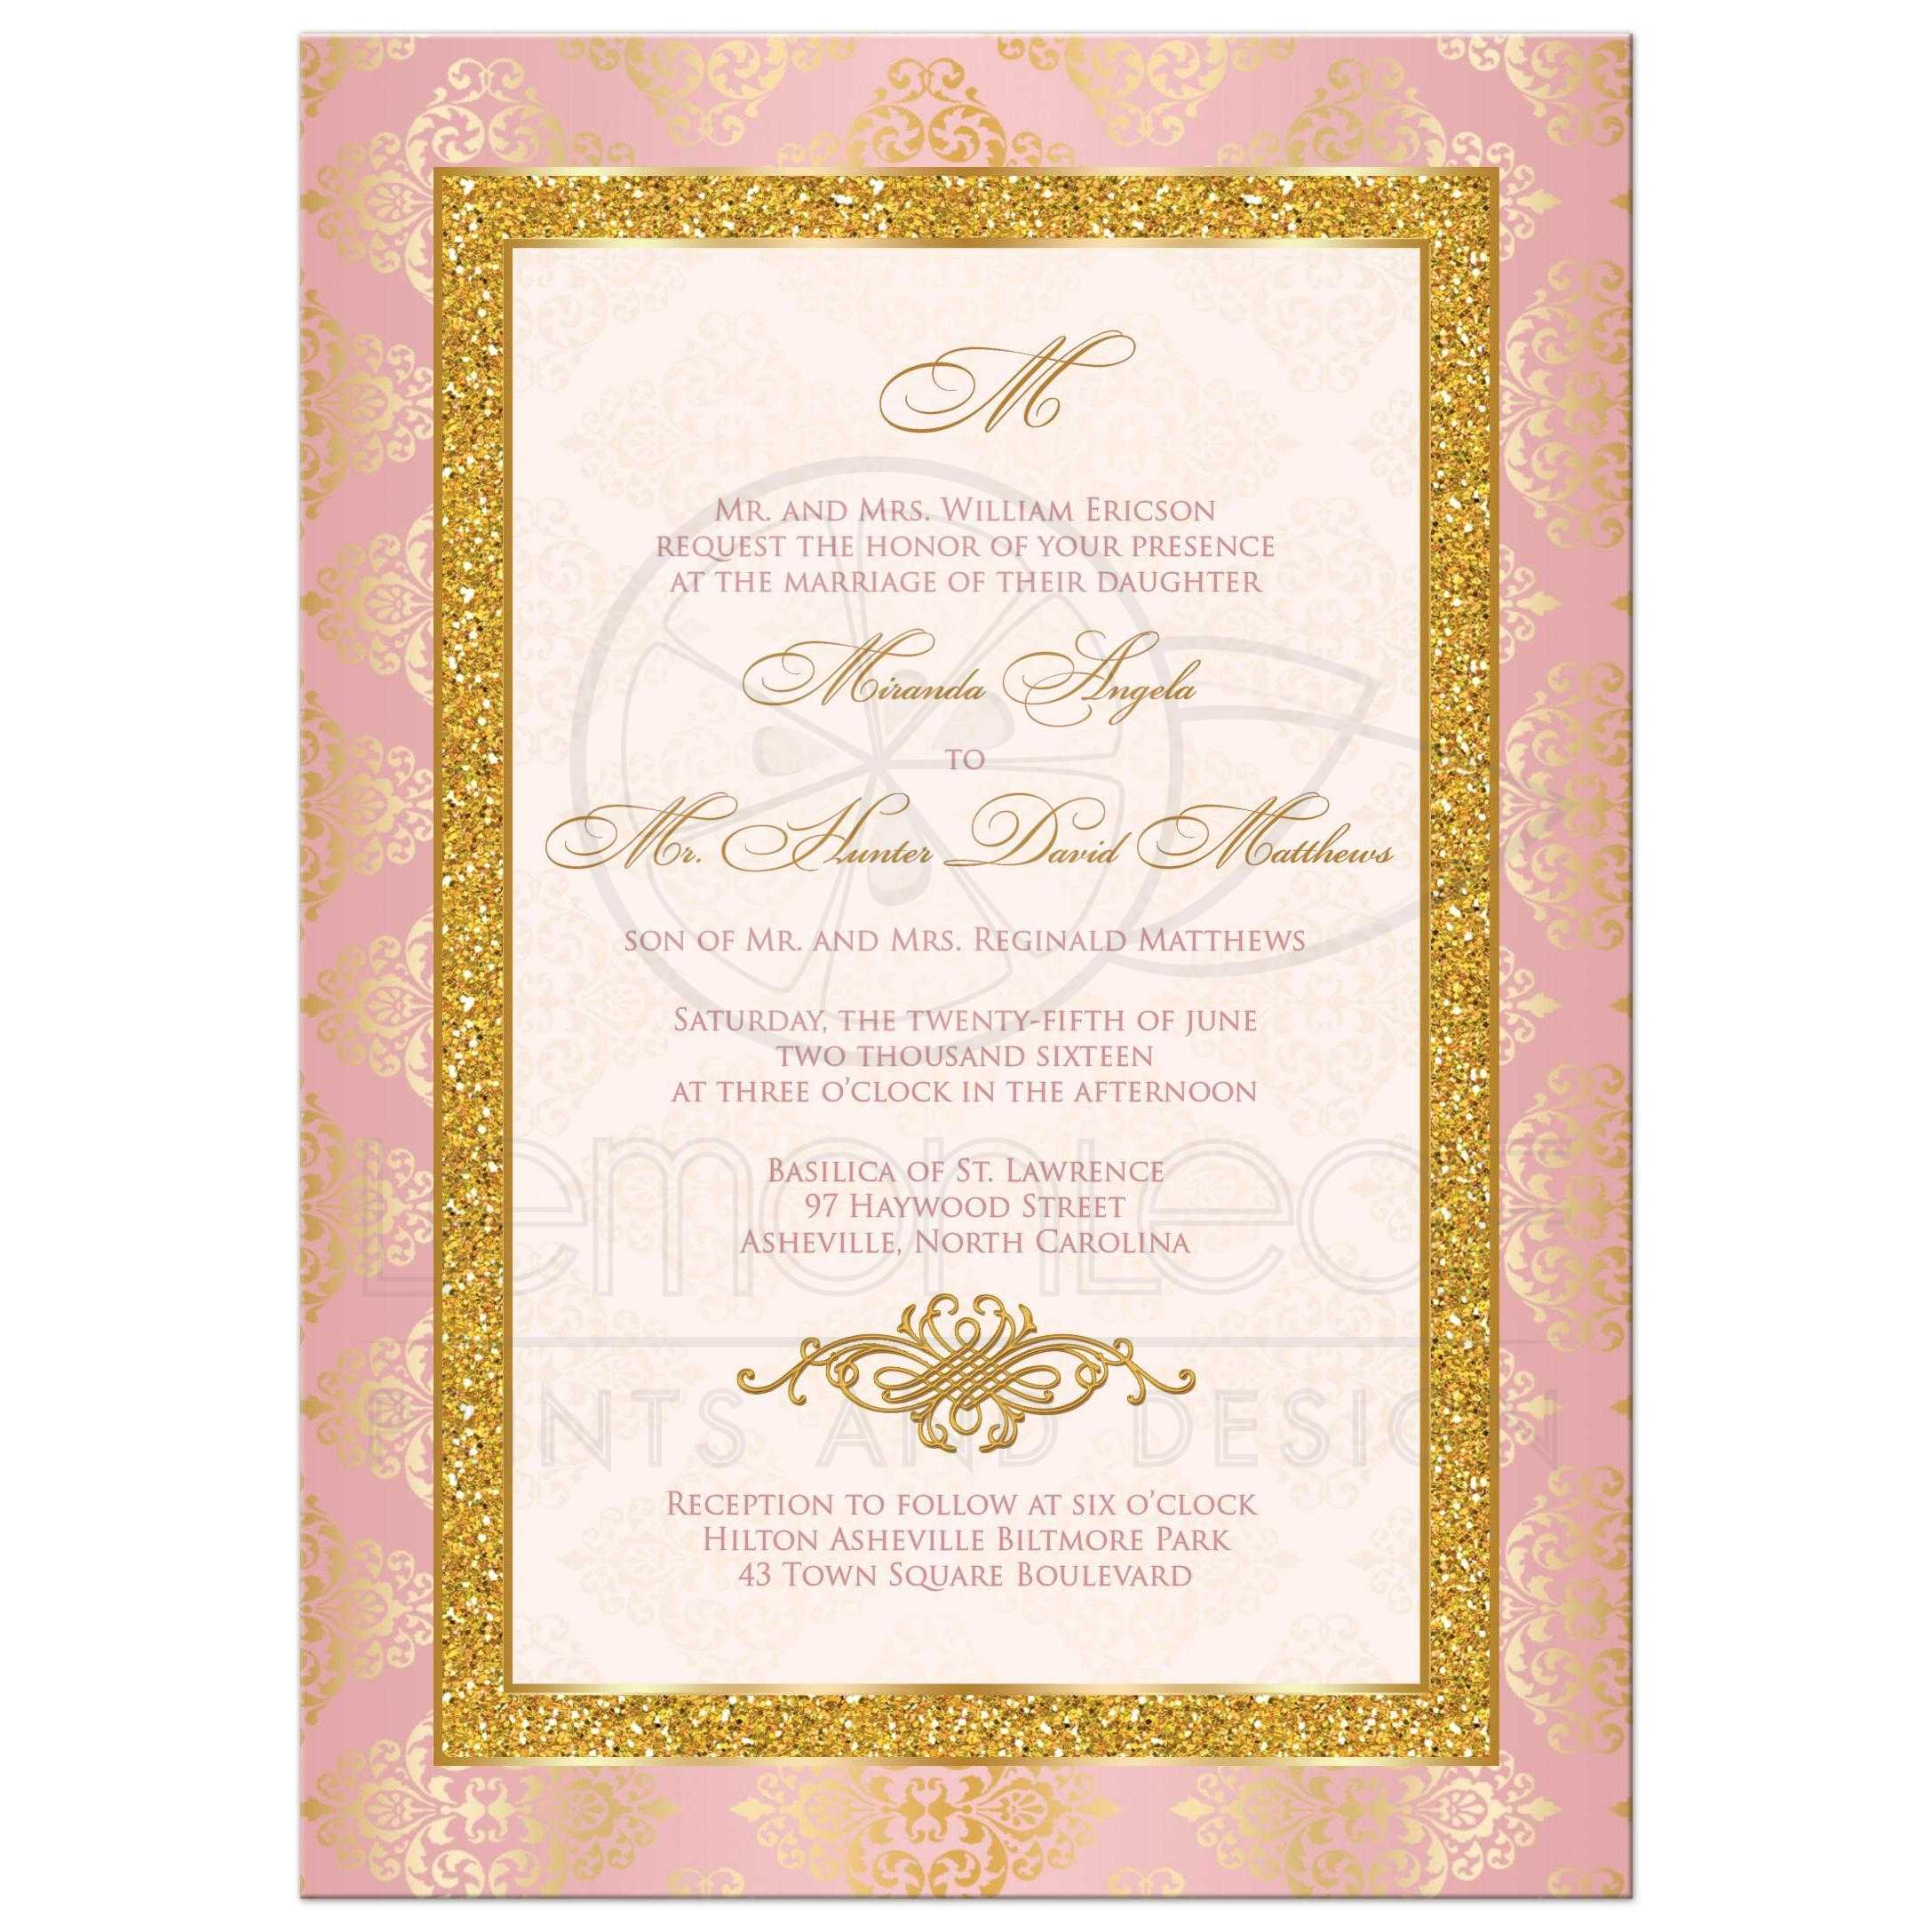 Wedding Invitation | Victorian Elegance | Blush Pink, Gold Damask ...